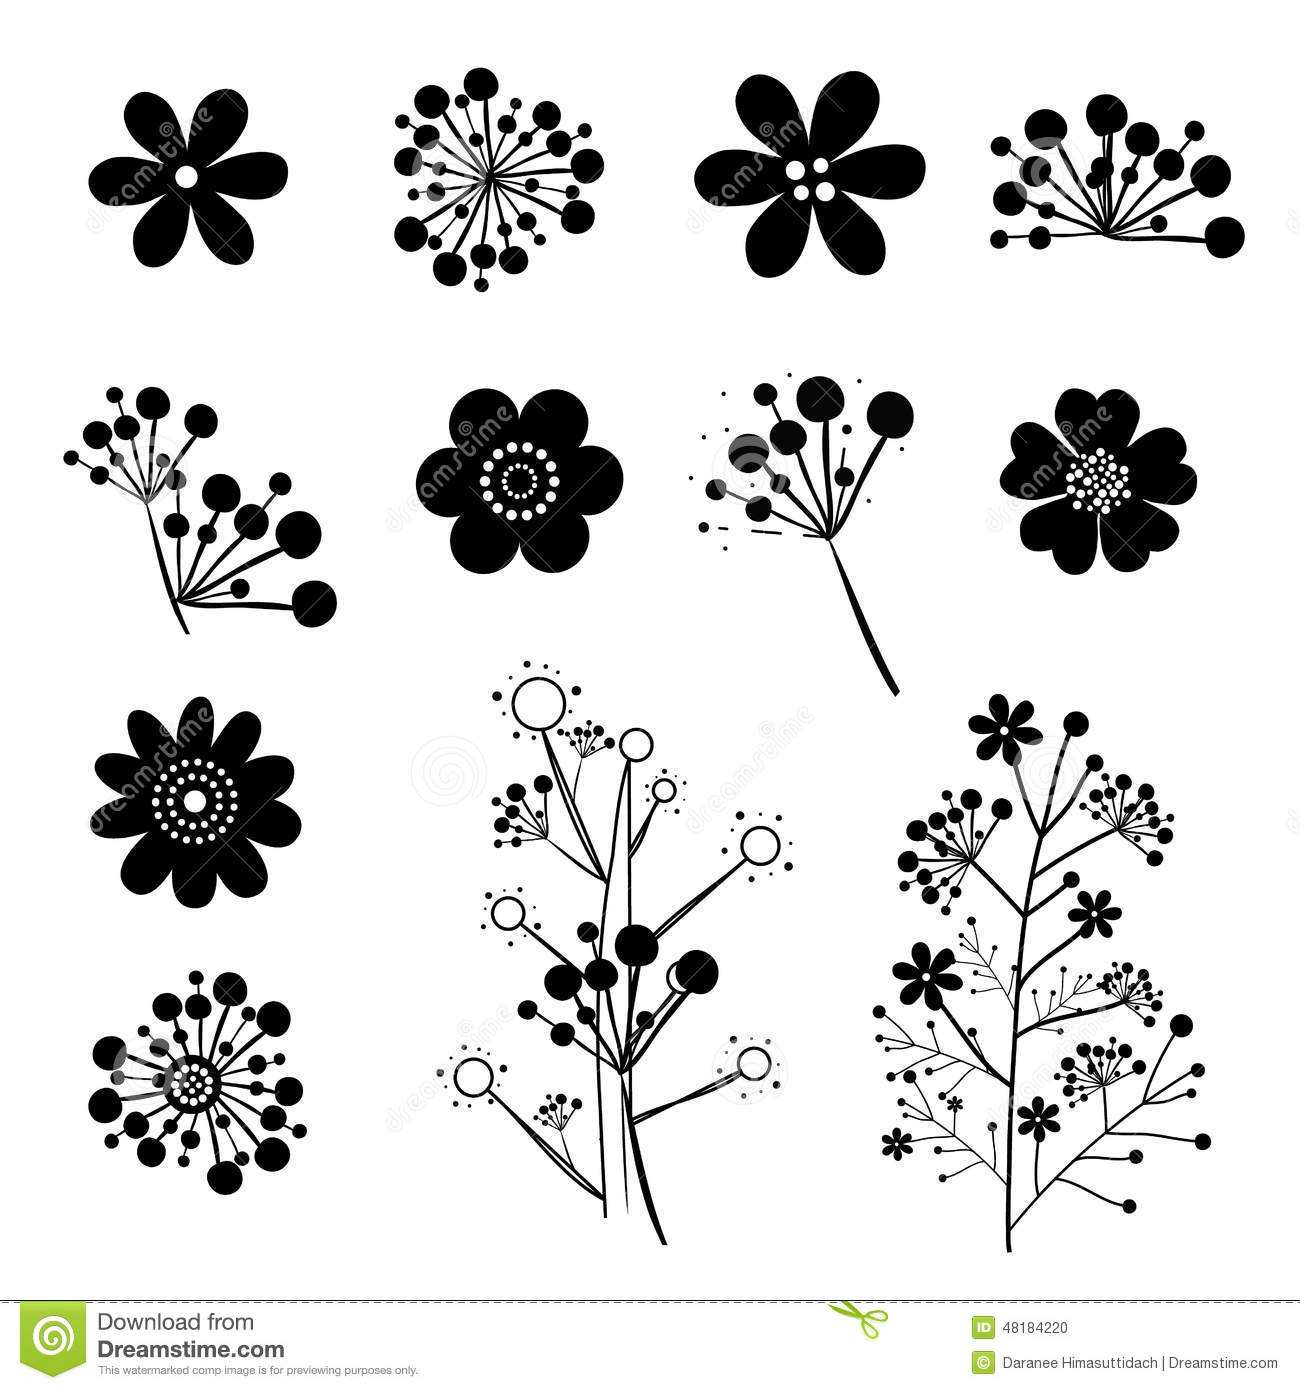 Dibujos Para Pintar De Arboles furthermore Curious George Coloring Pages in addition Laurel Wreaths Vector Isolated 115366 further His And Her Majesty Crowns V2 Wall Sticker together with . on yellow cartoon trees